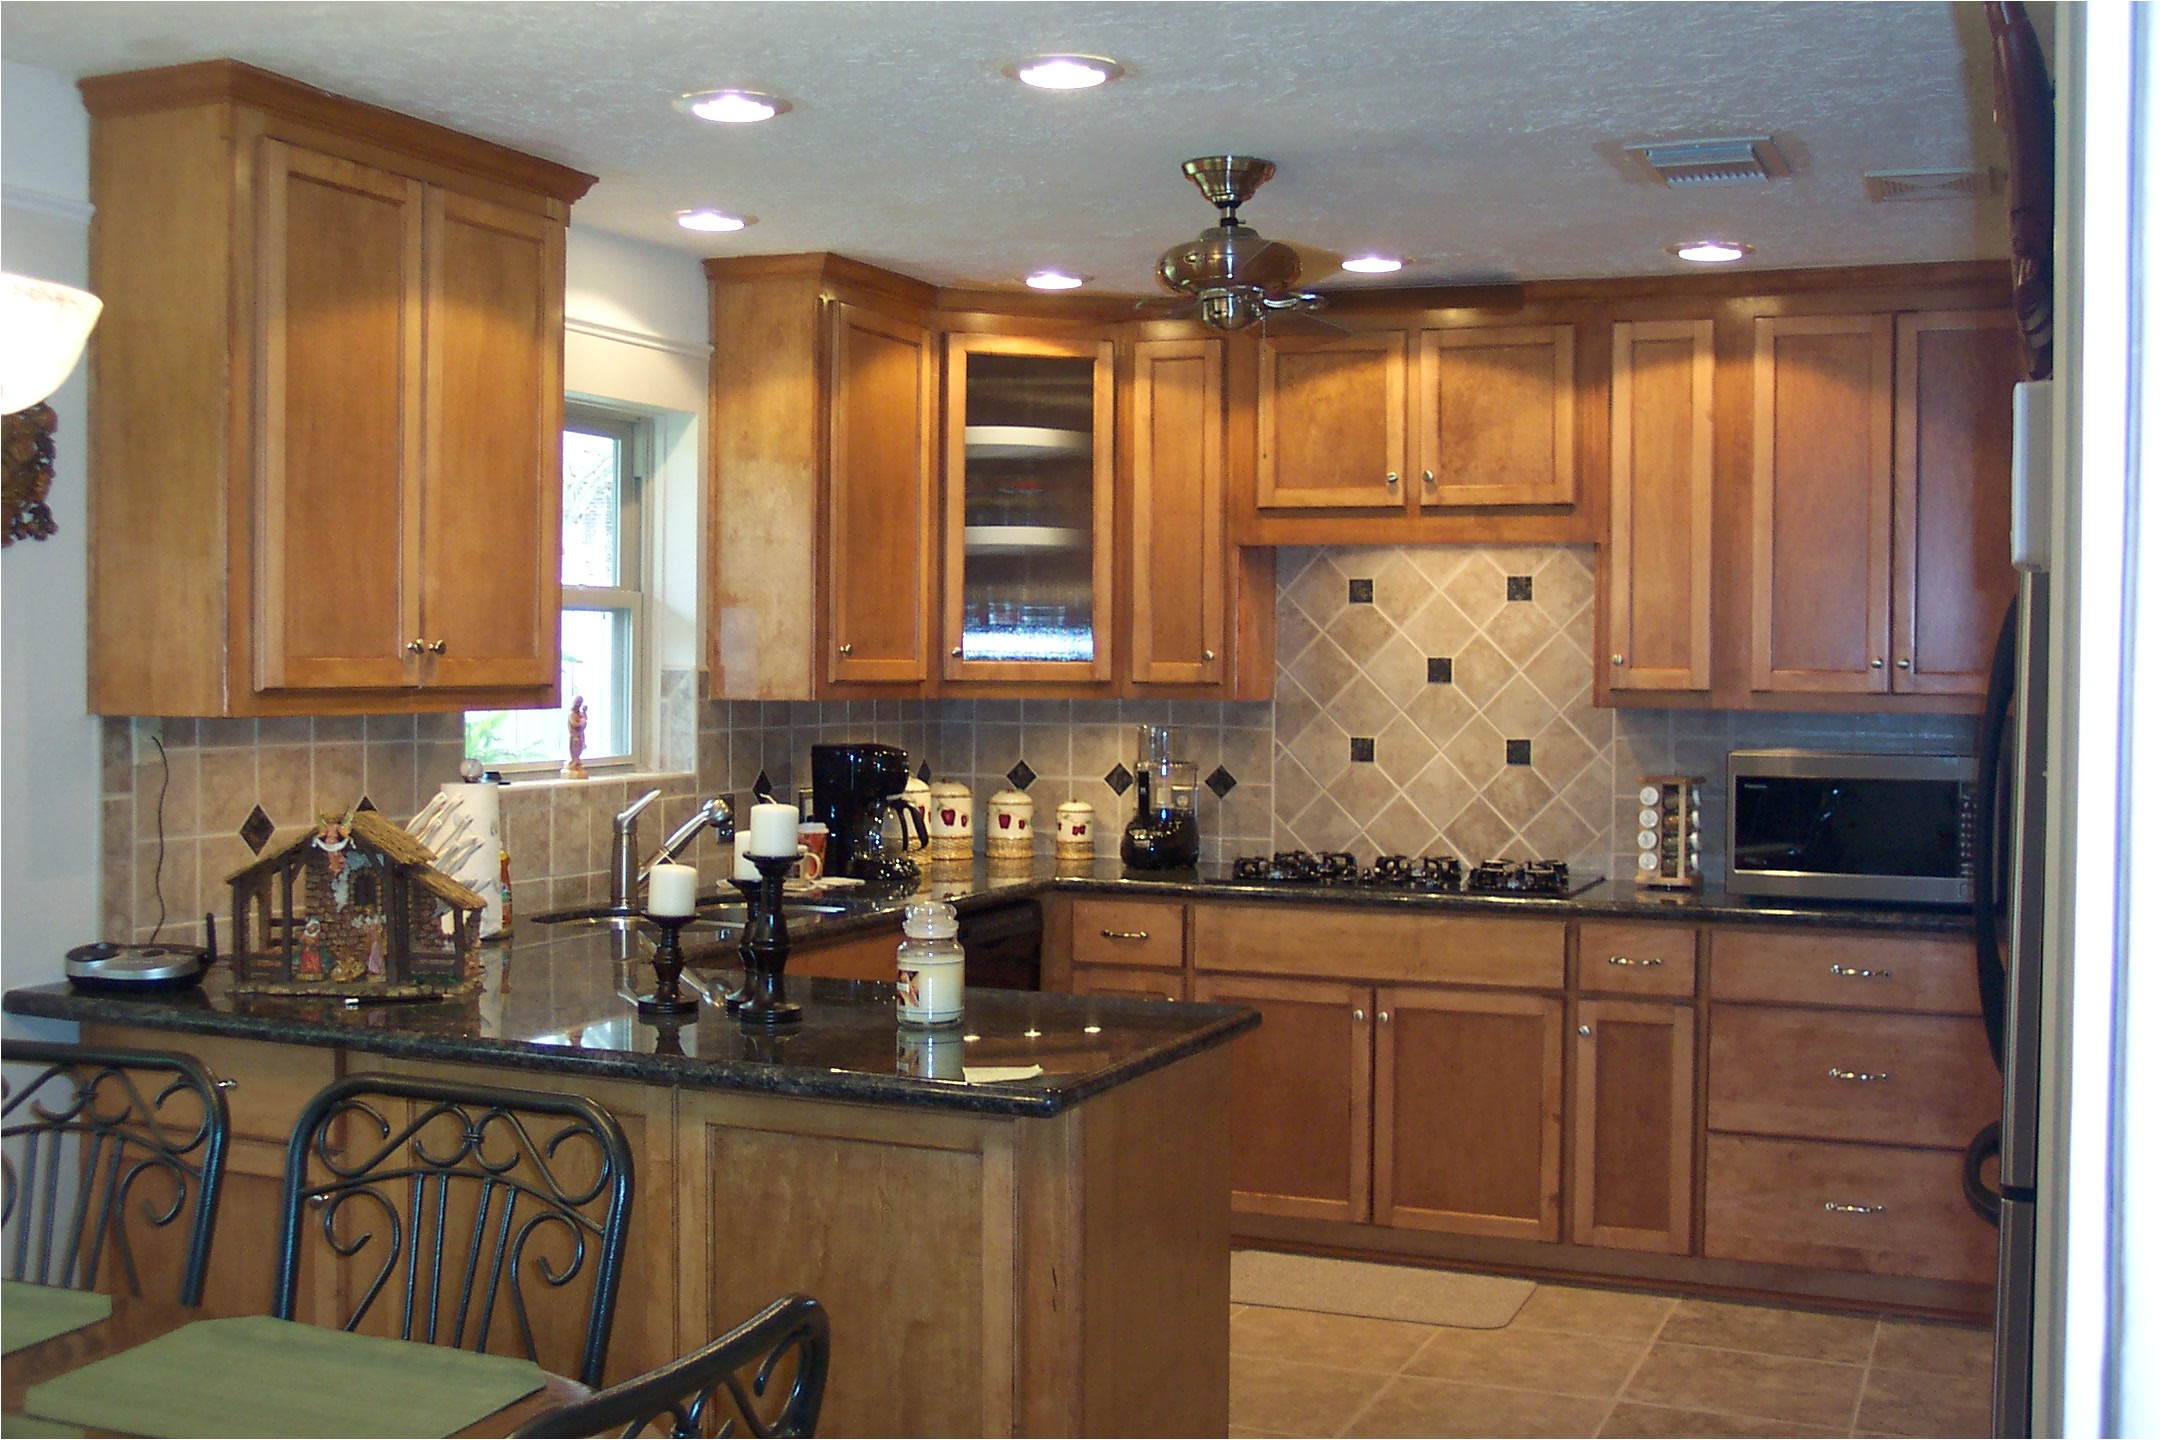 great home improvements kitchen small kitchen remodeling ideas with kitchen remodel design layout kitchen remodel layout plans at kitchen remodeling ideas